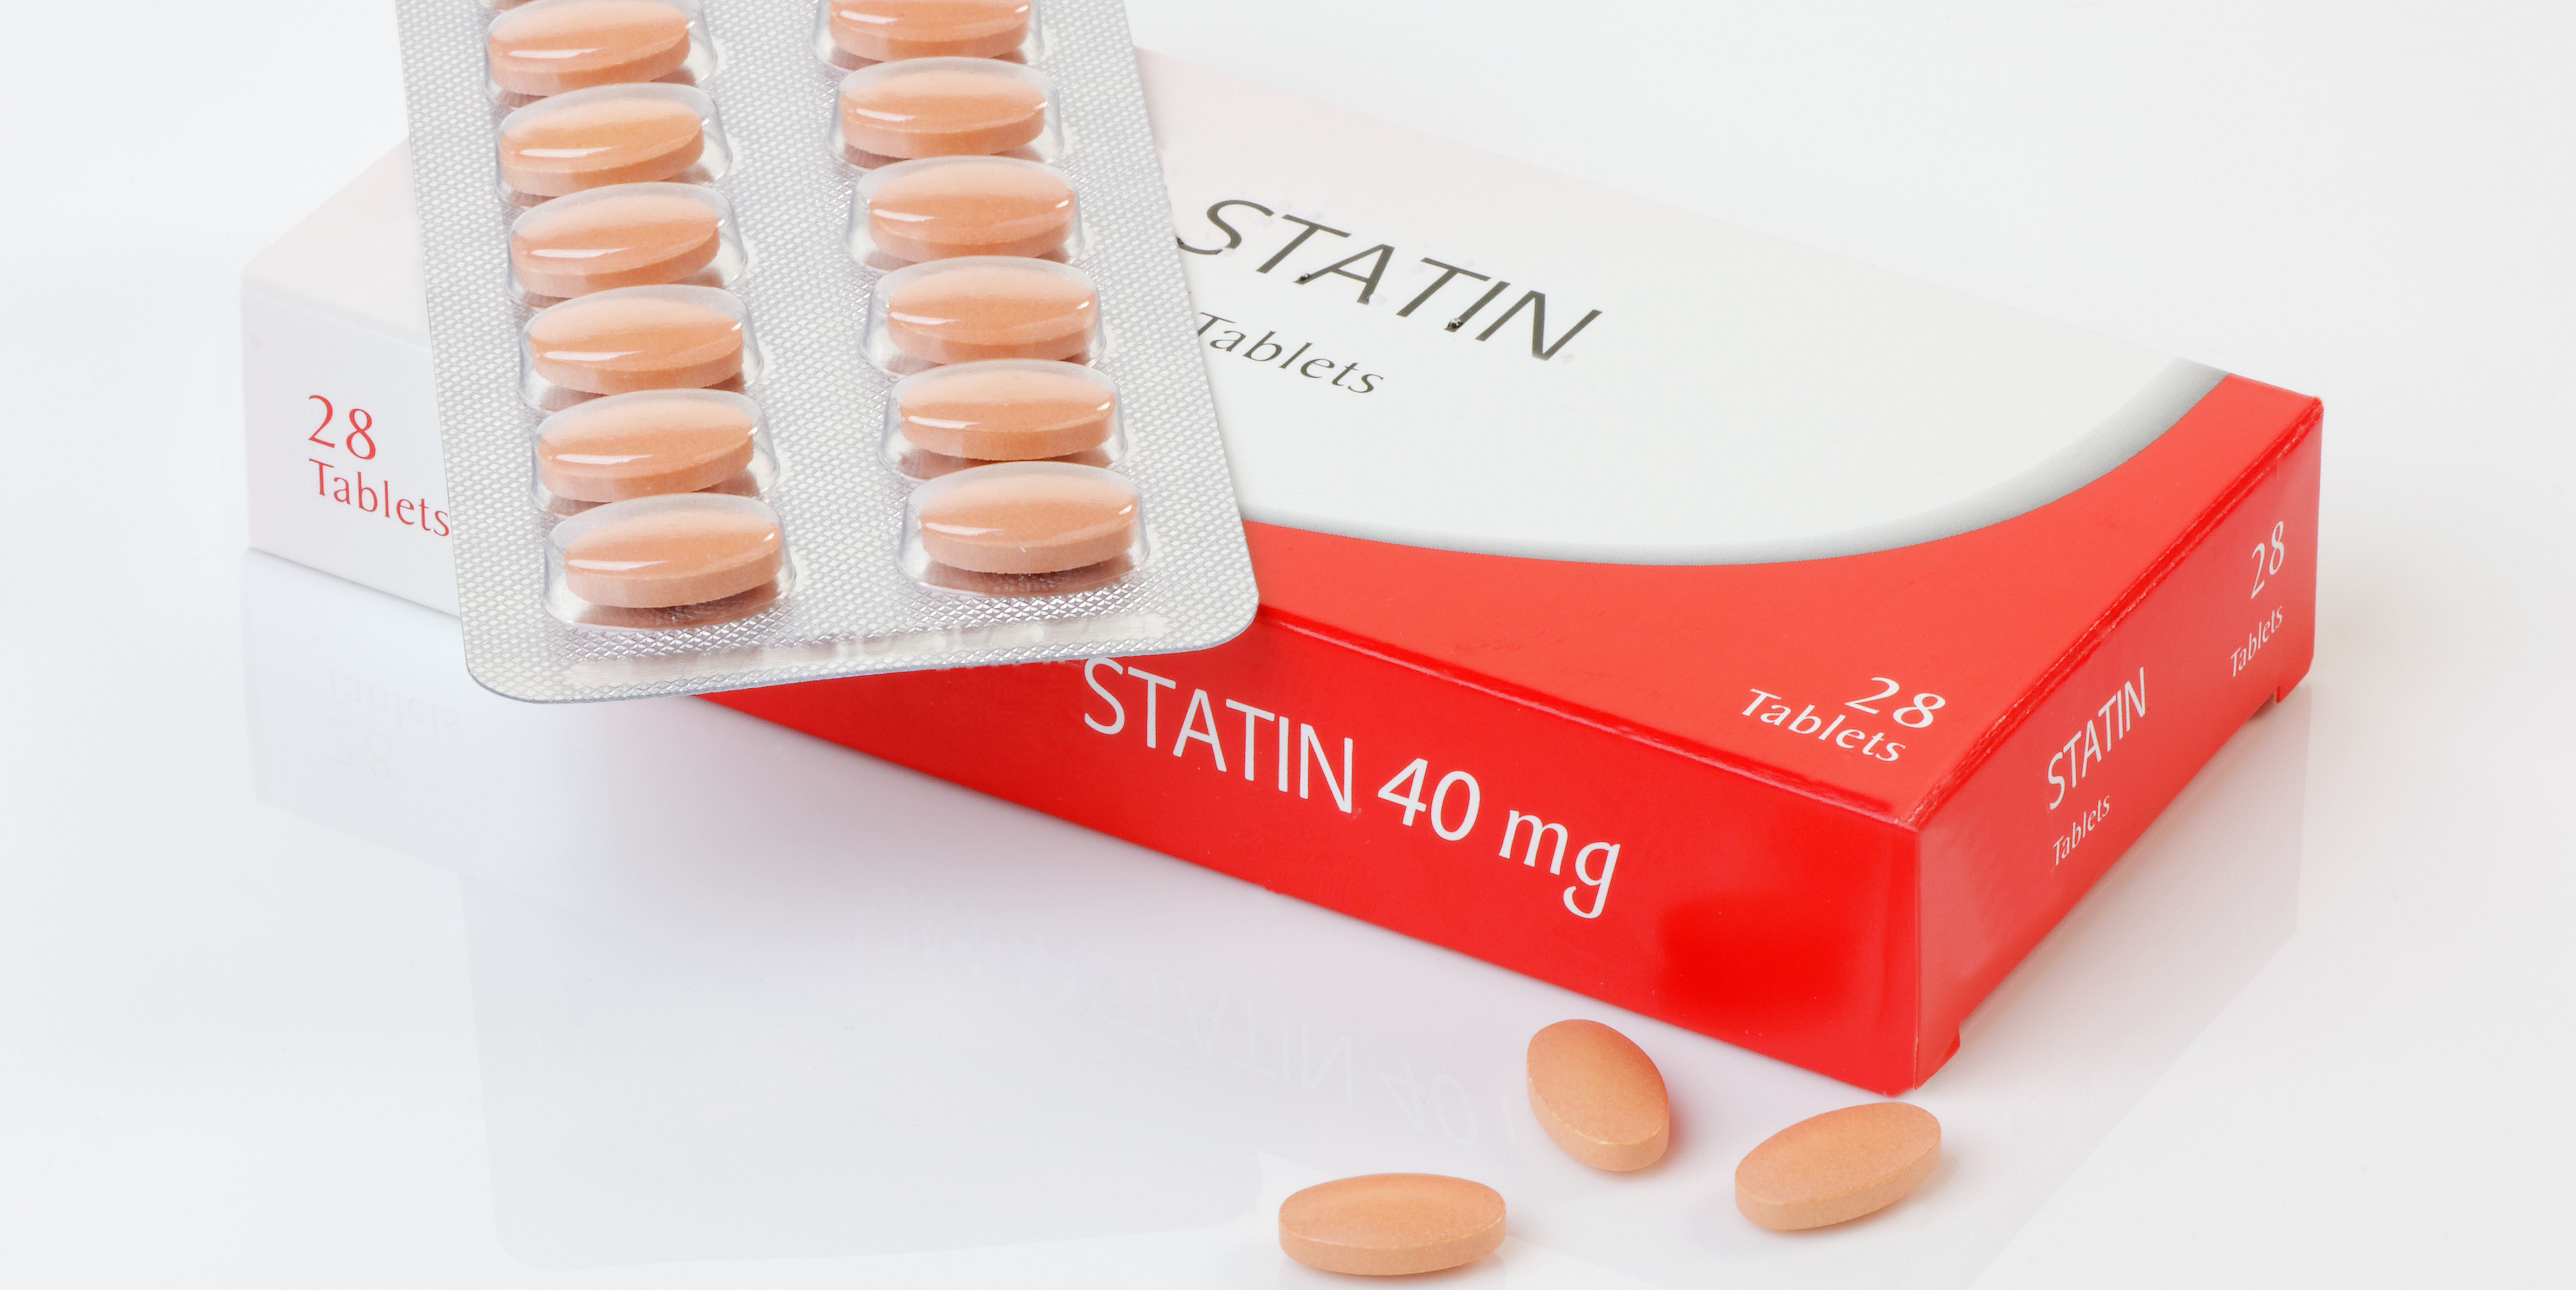 Adherence to Statins after ACS: What's Your Baseline?